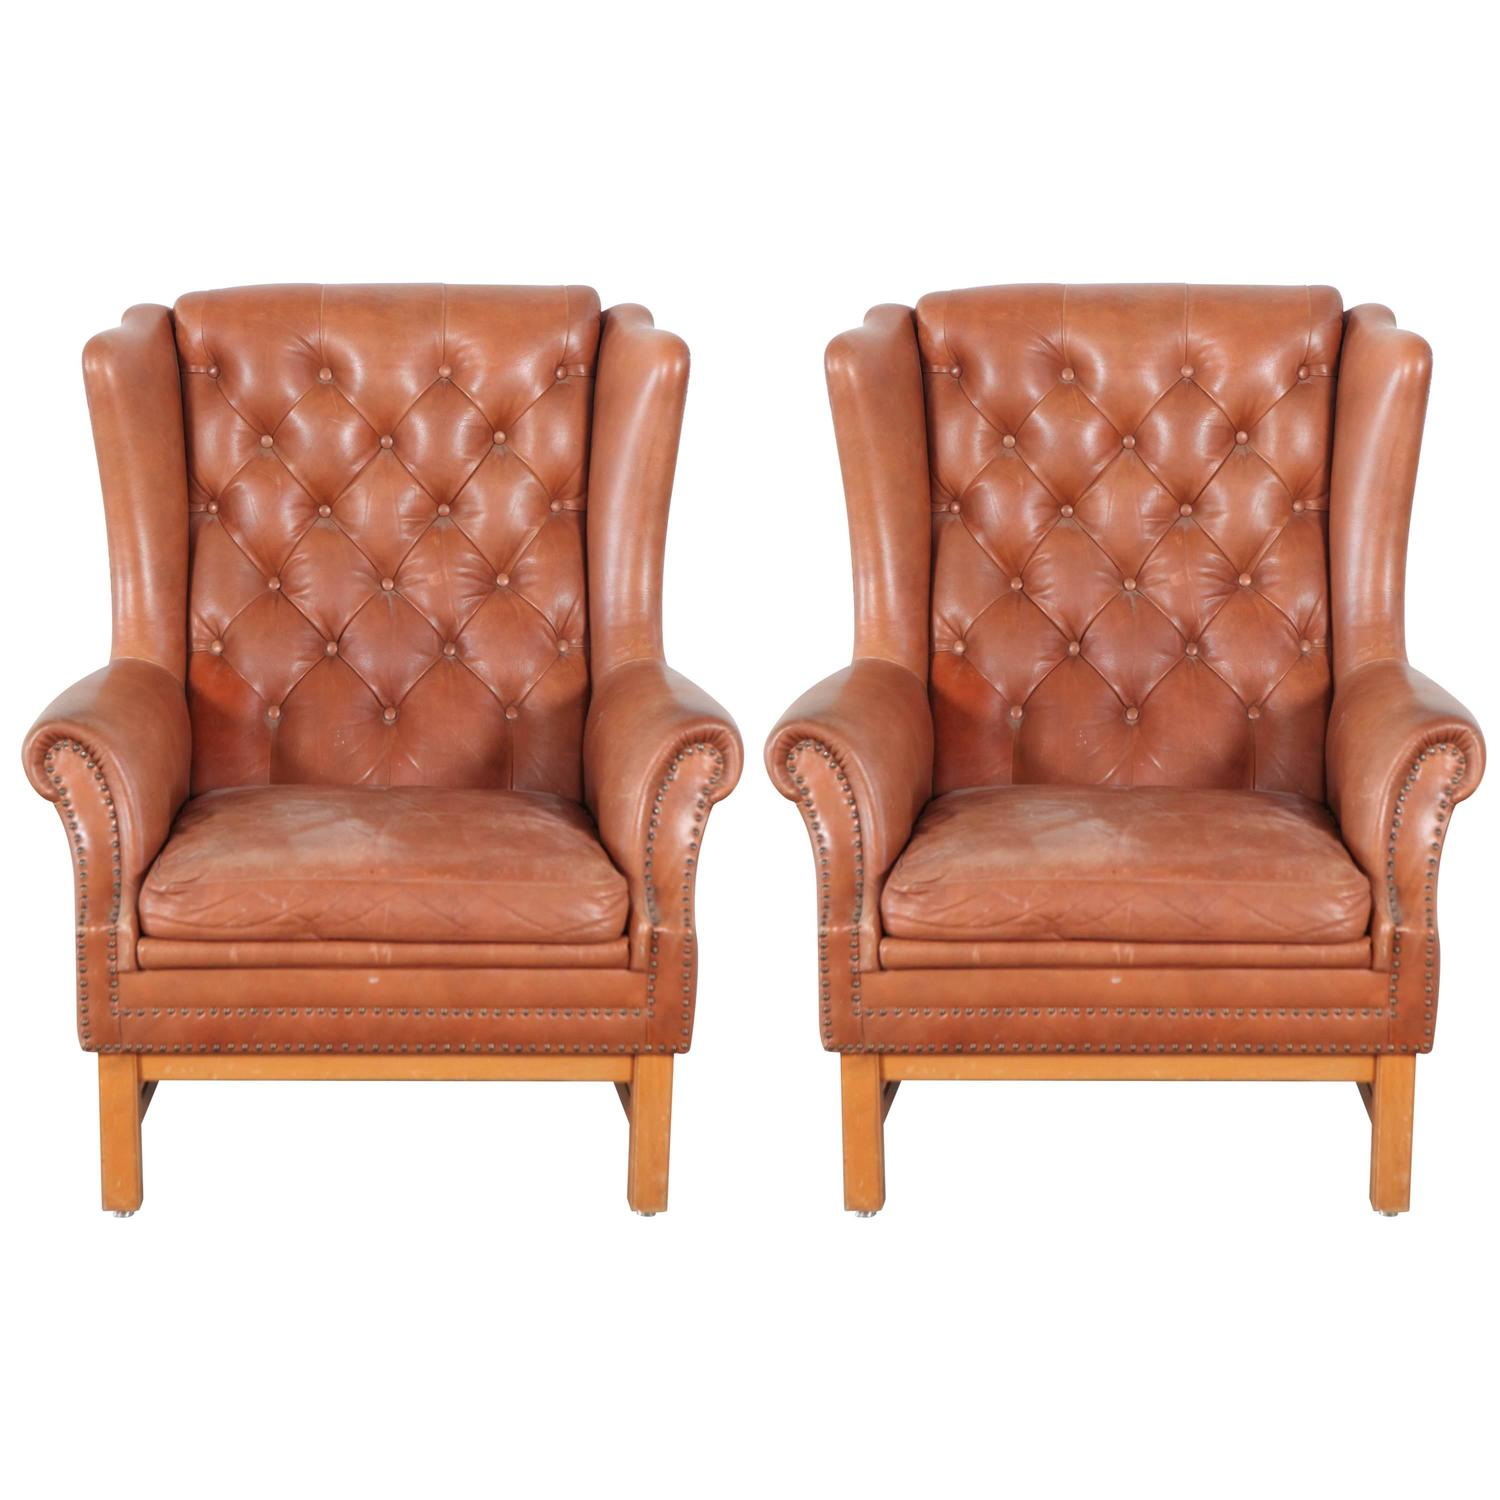 tufted nailhead chair nursery swivel glider recliner chippendale style leather wing back chairs with